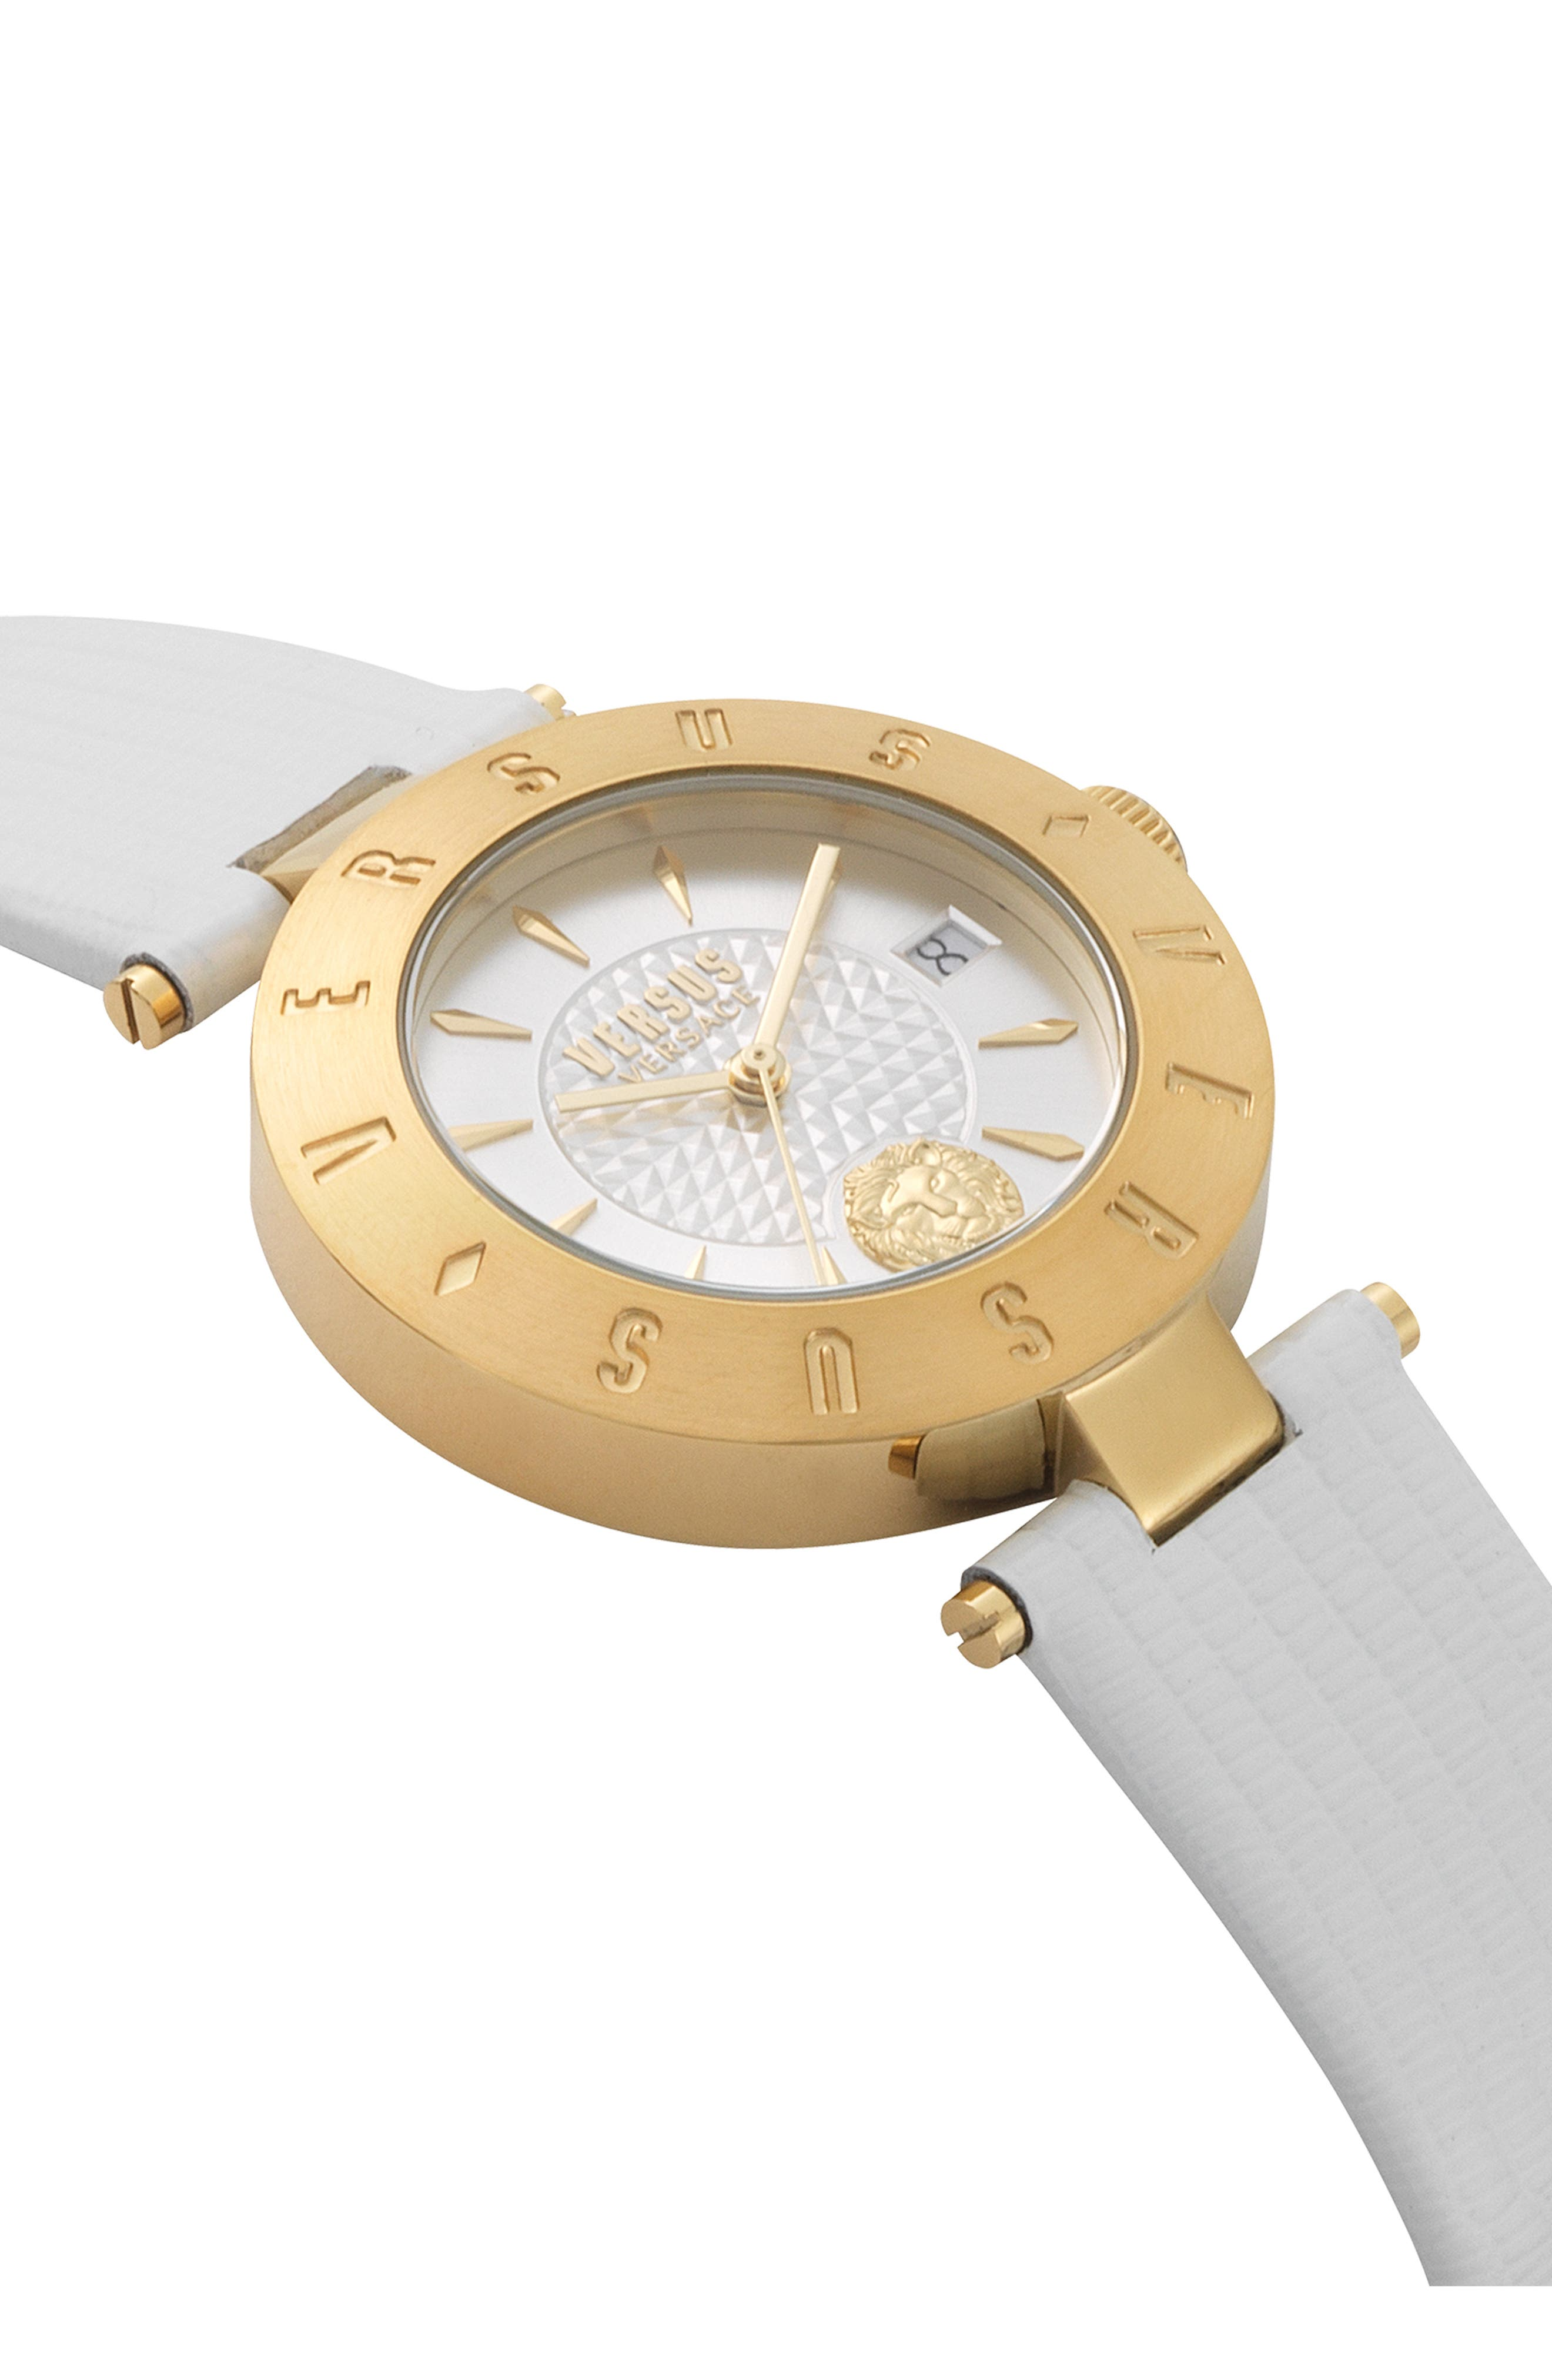 VERSUS VERSACE, Logo Leather Strap Watch, 34mm, Alternate thumbnail 3, color, WHITE/ GOLD